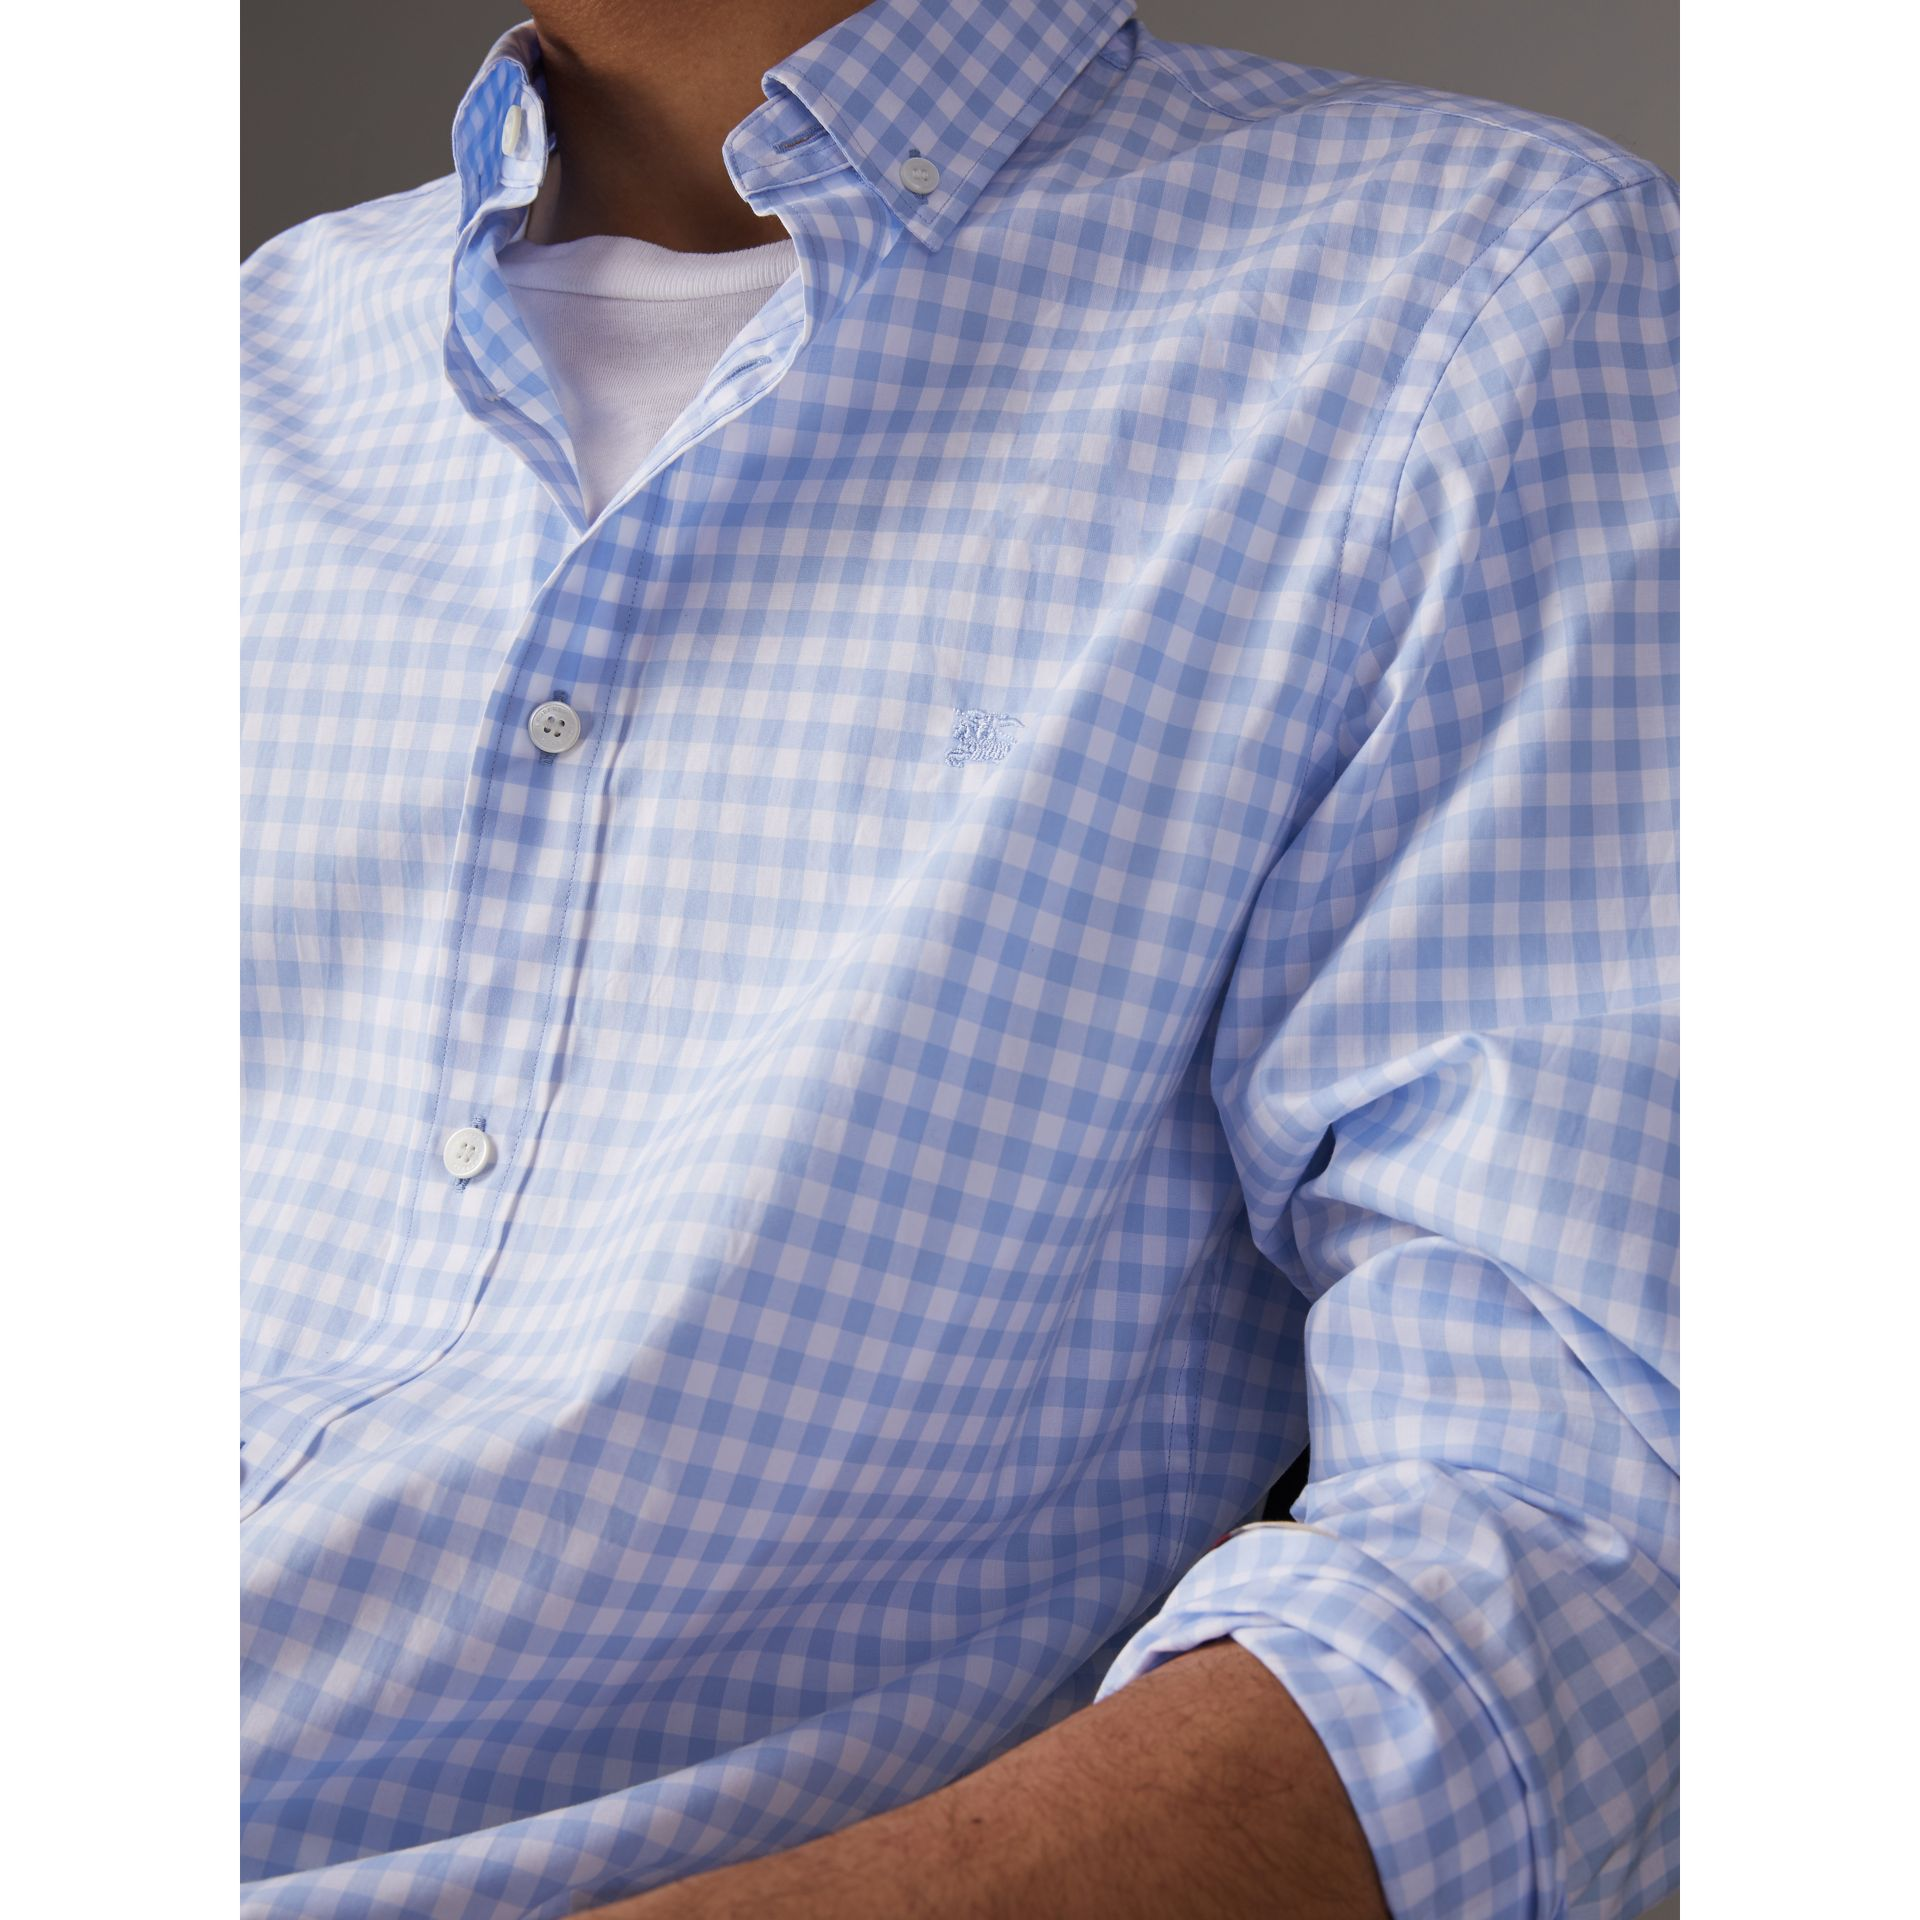 Button-down Collar Gingham Cotton Shirt in Pale Blue - Men | Burberry - gallery image 1